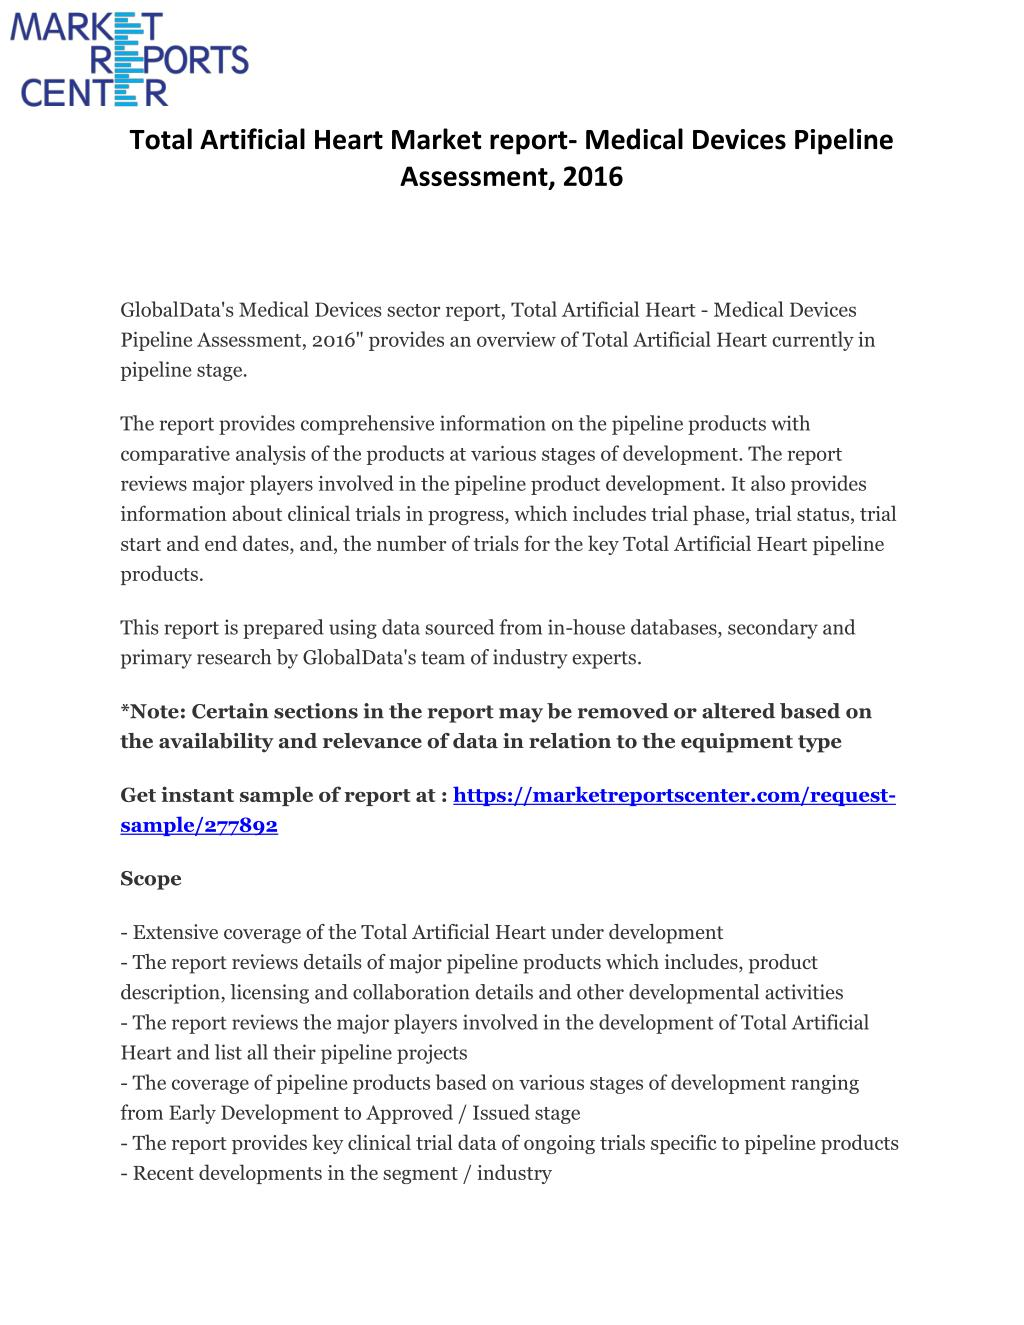 PPT - Global research report on Total Artificial Heart